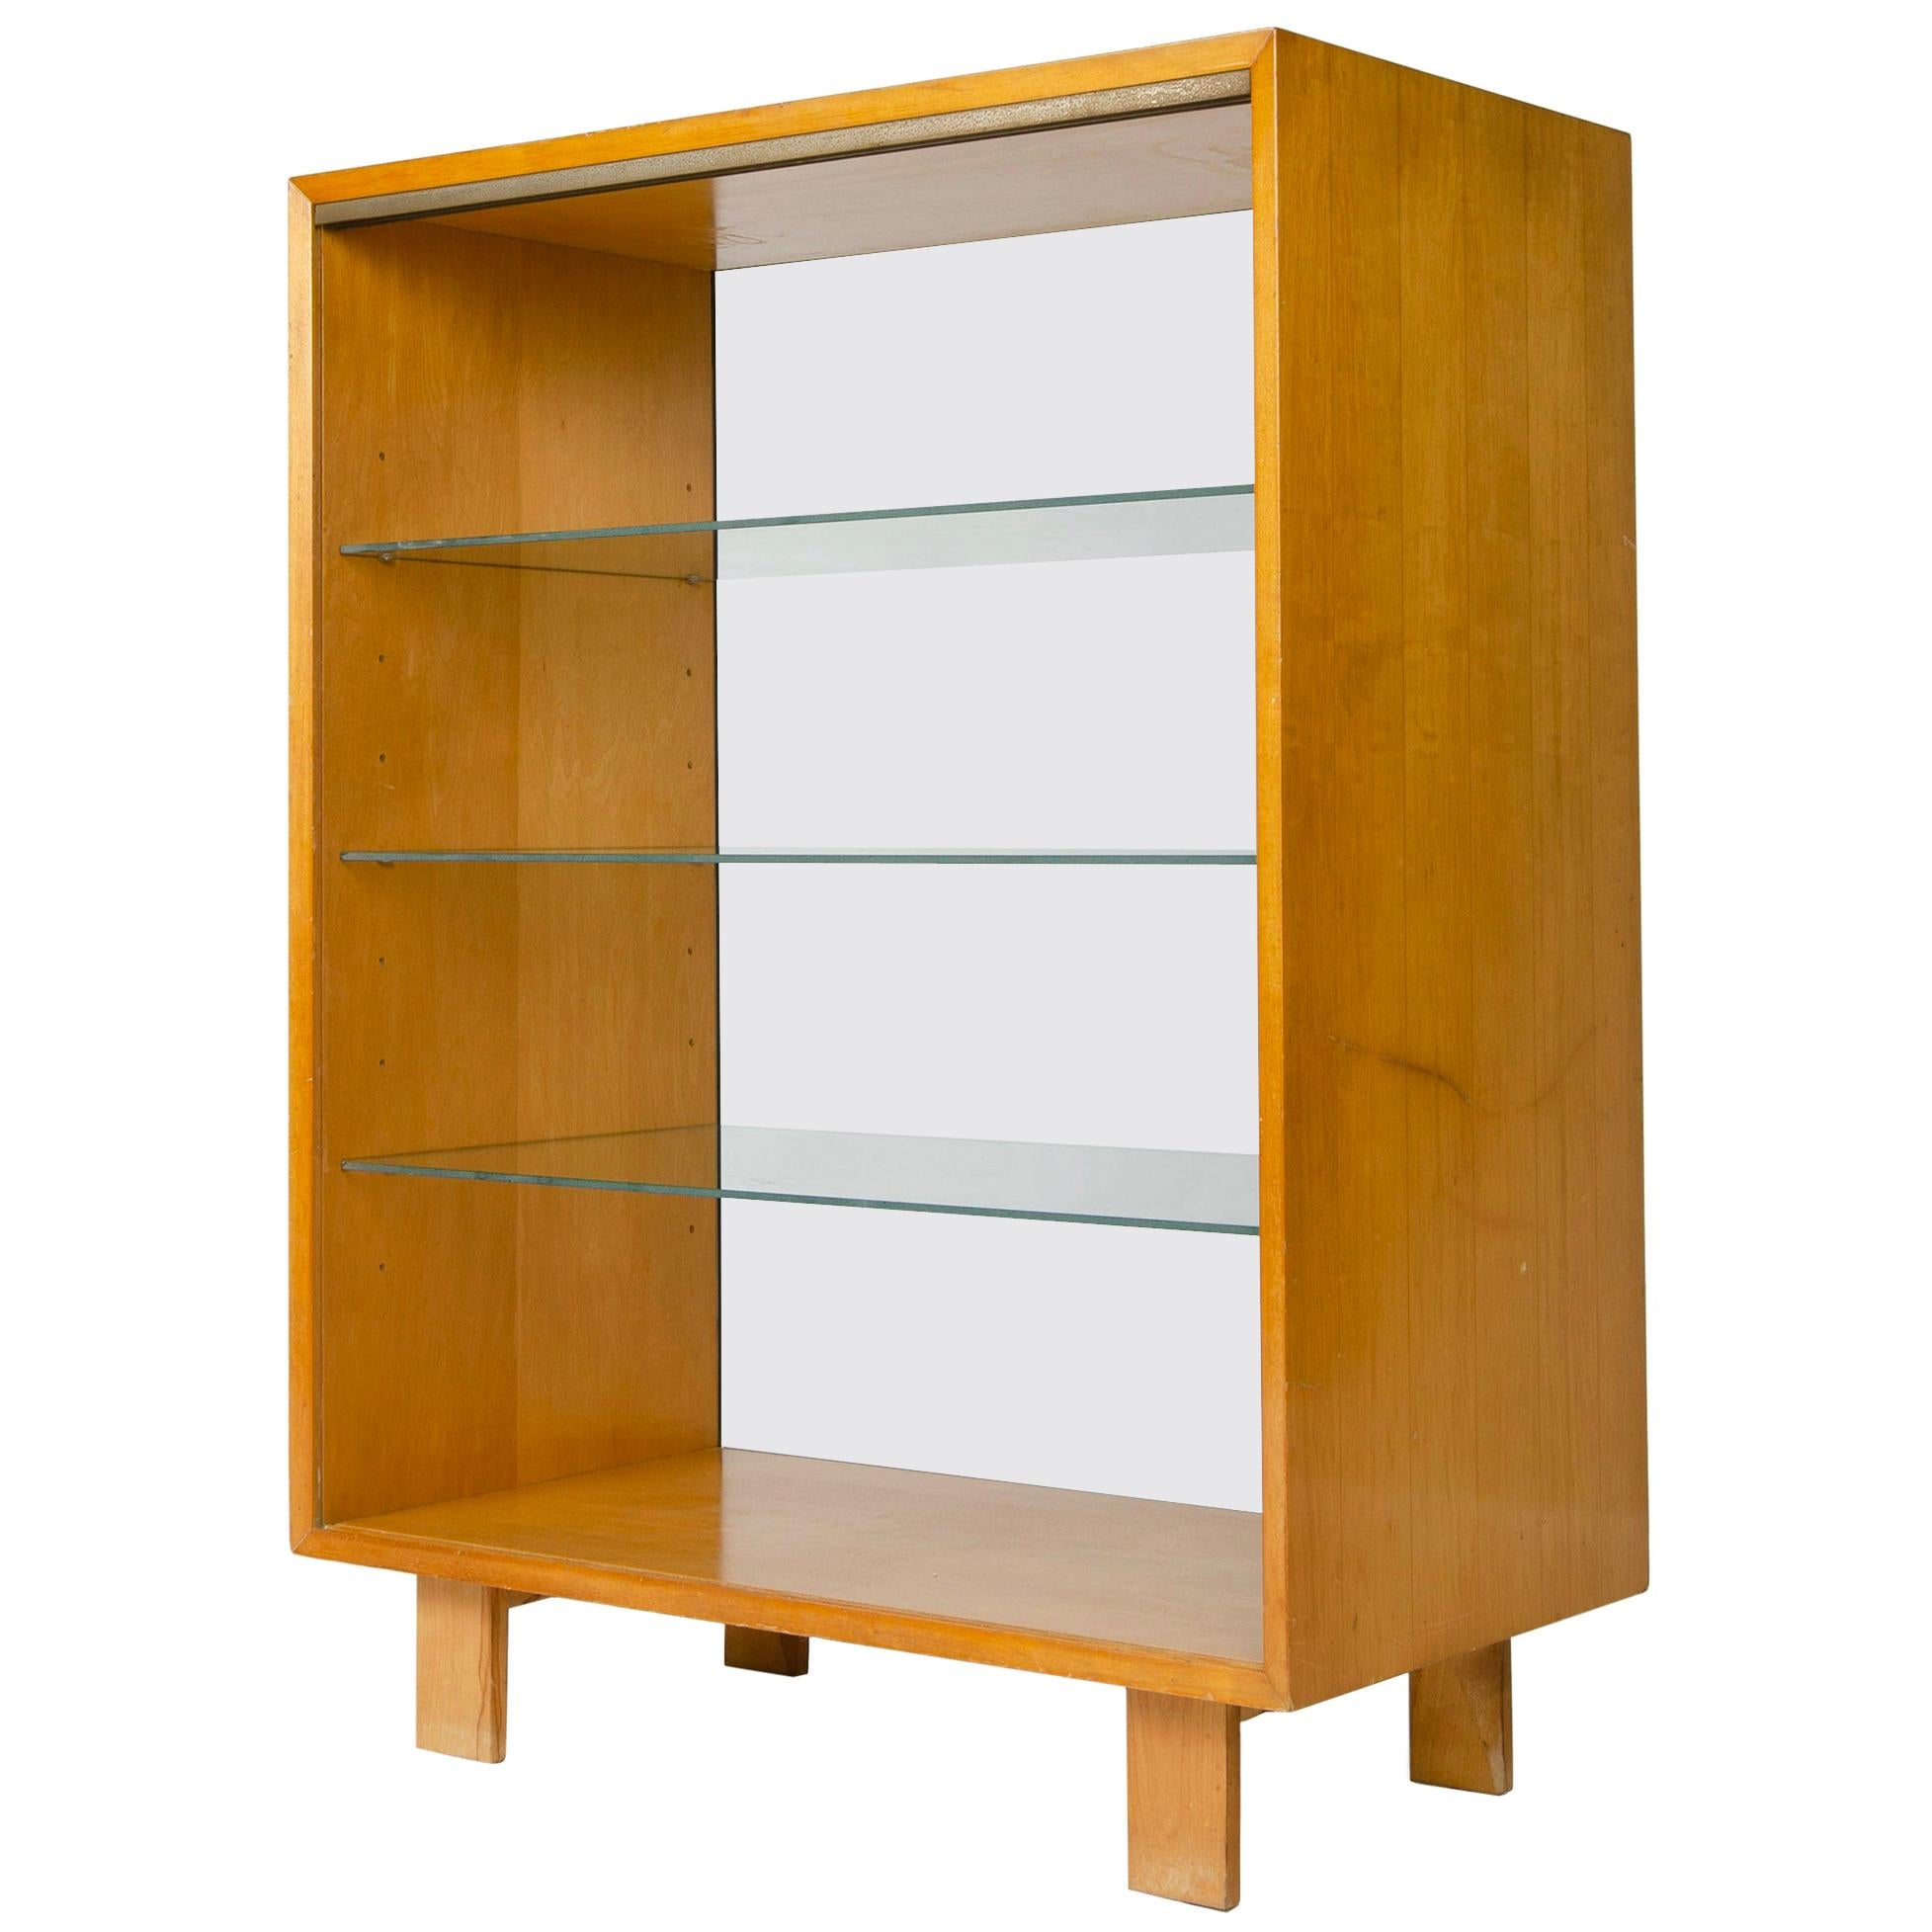 1950s Walnut Open Cabinet with Glass Shelving by George Nelson for Herman Miller